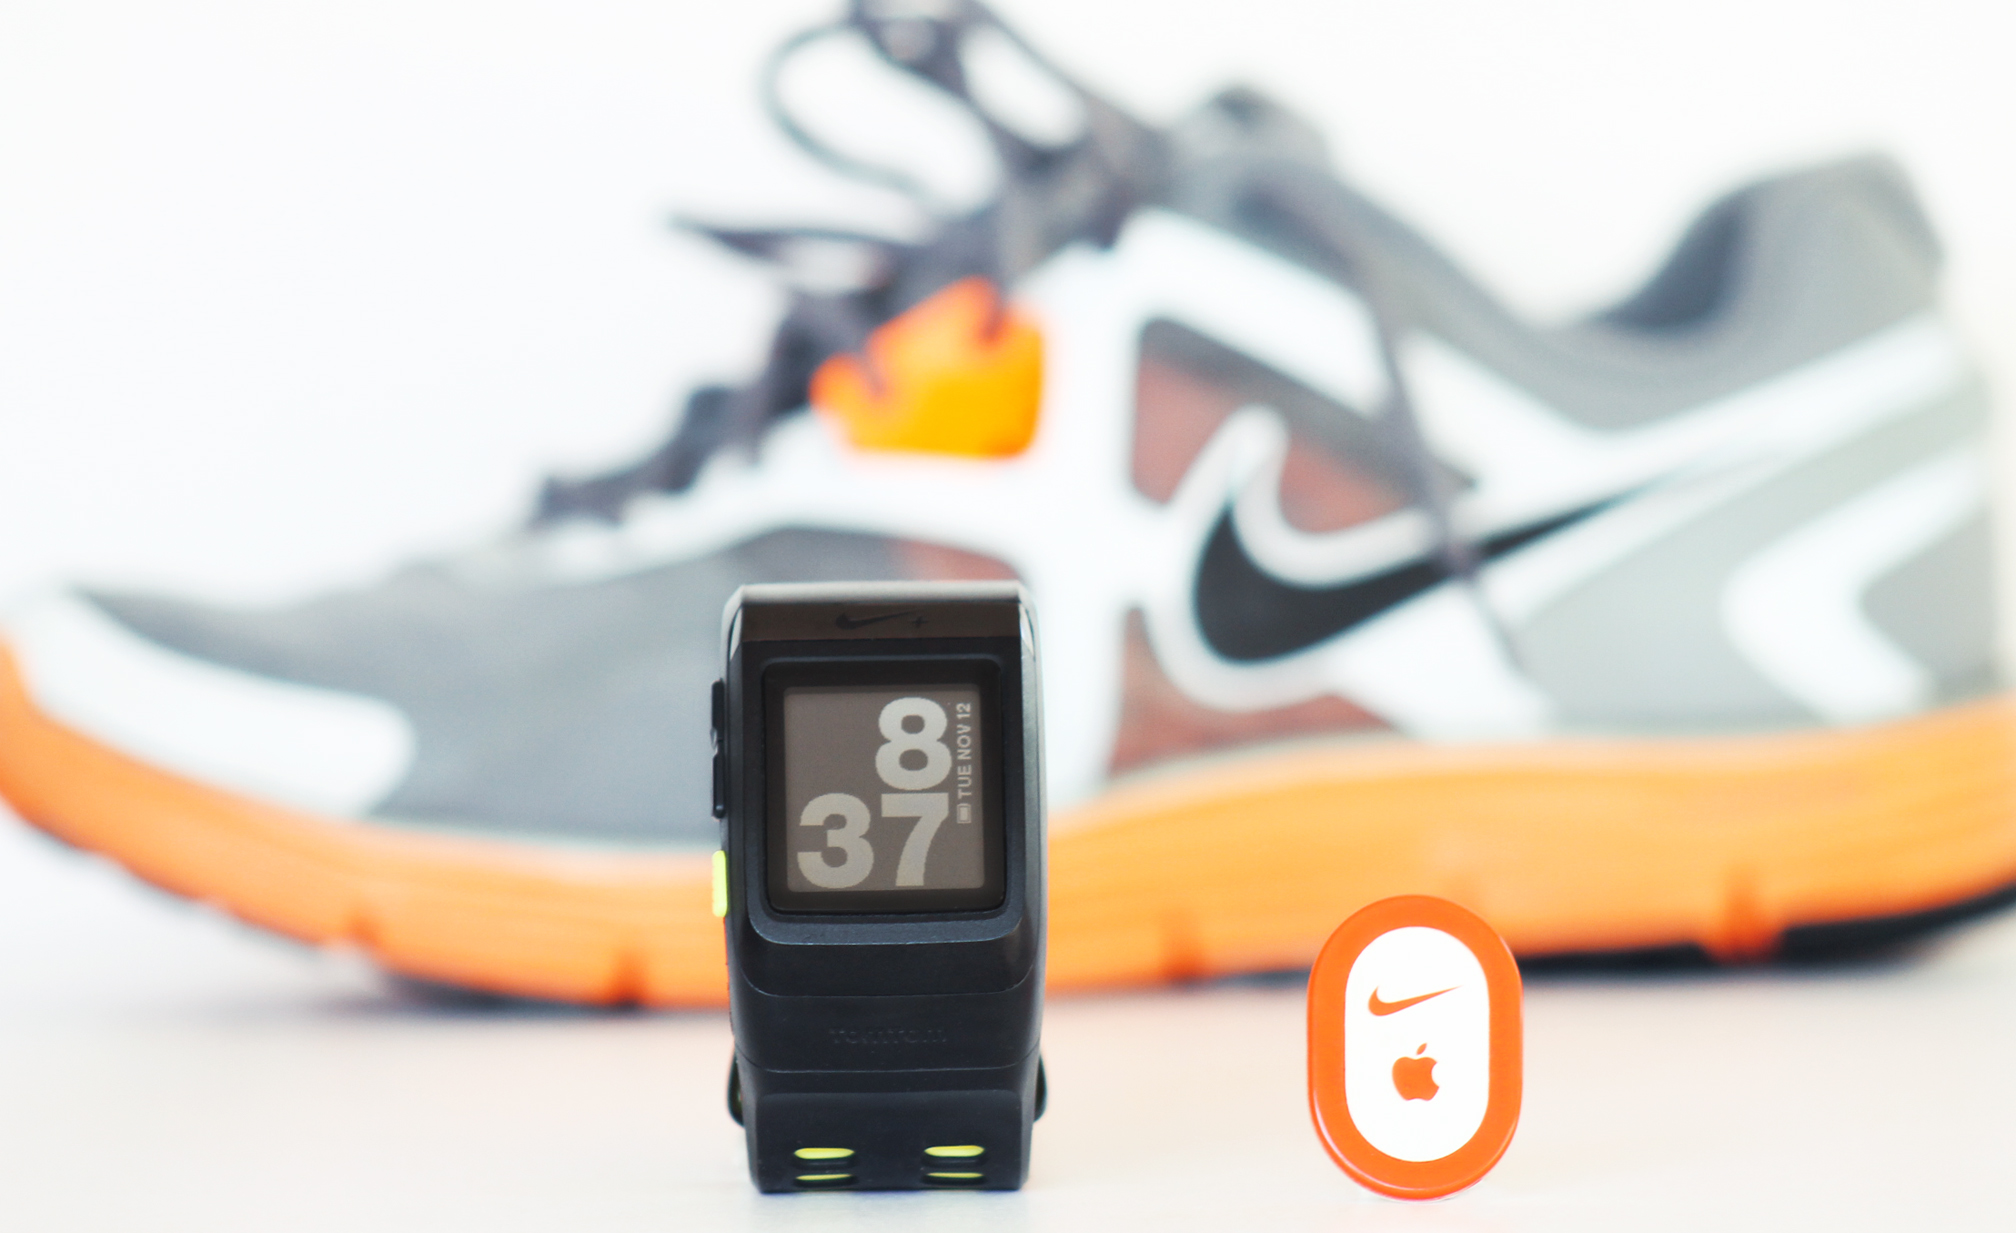 The Nike+ SportWatch and the Nike+